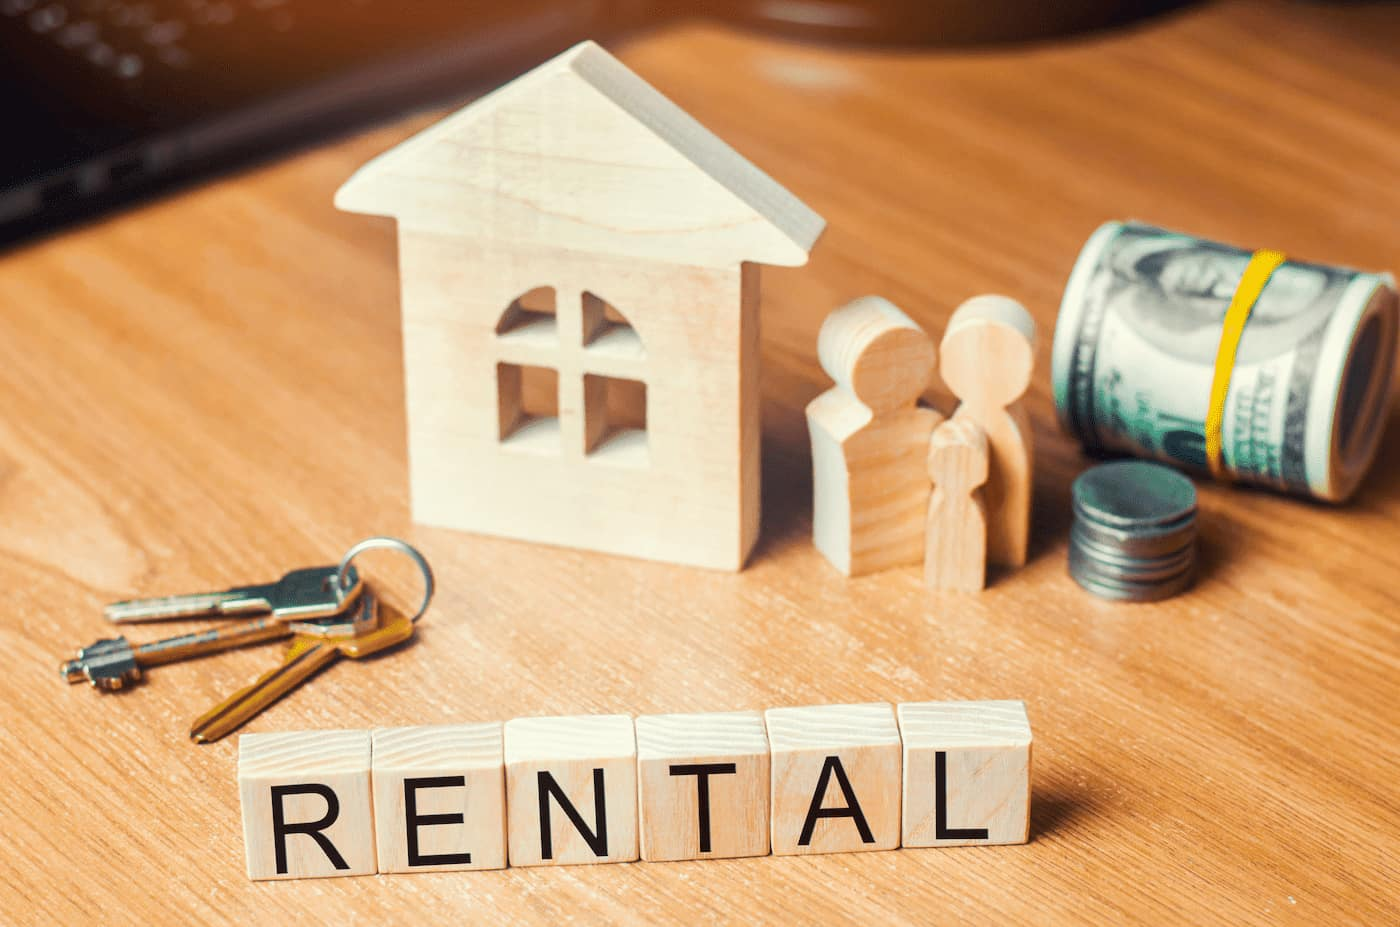 Characteristics to look for in rental properties